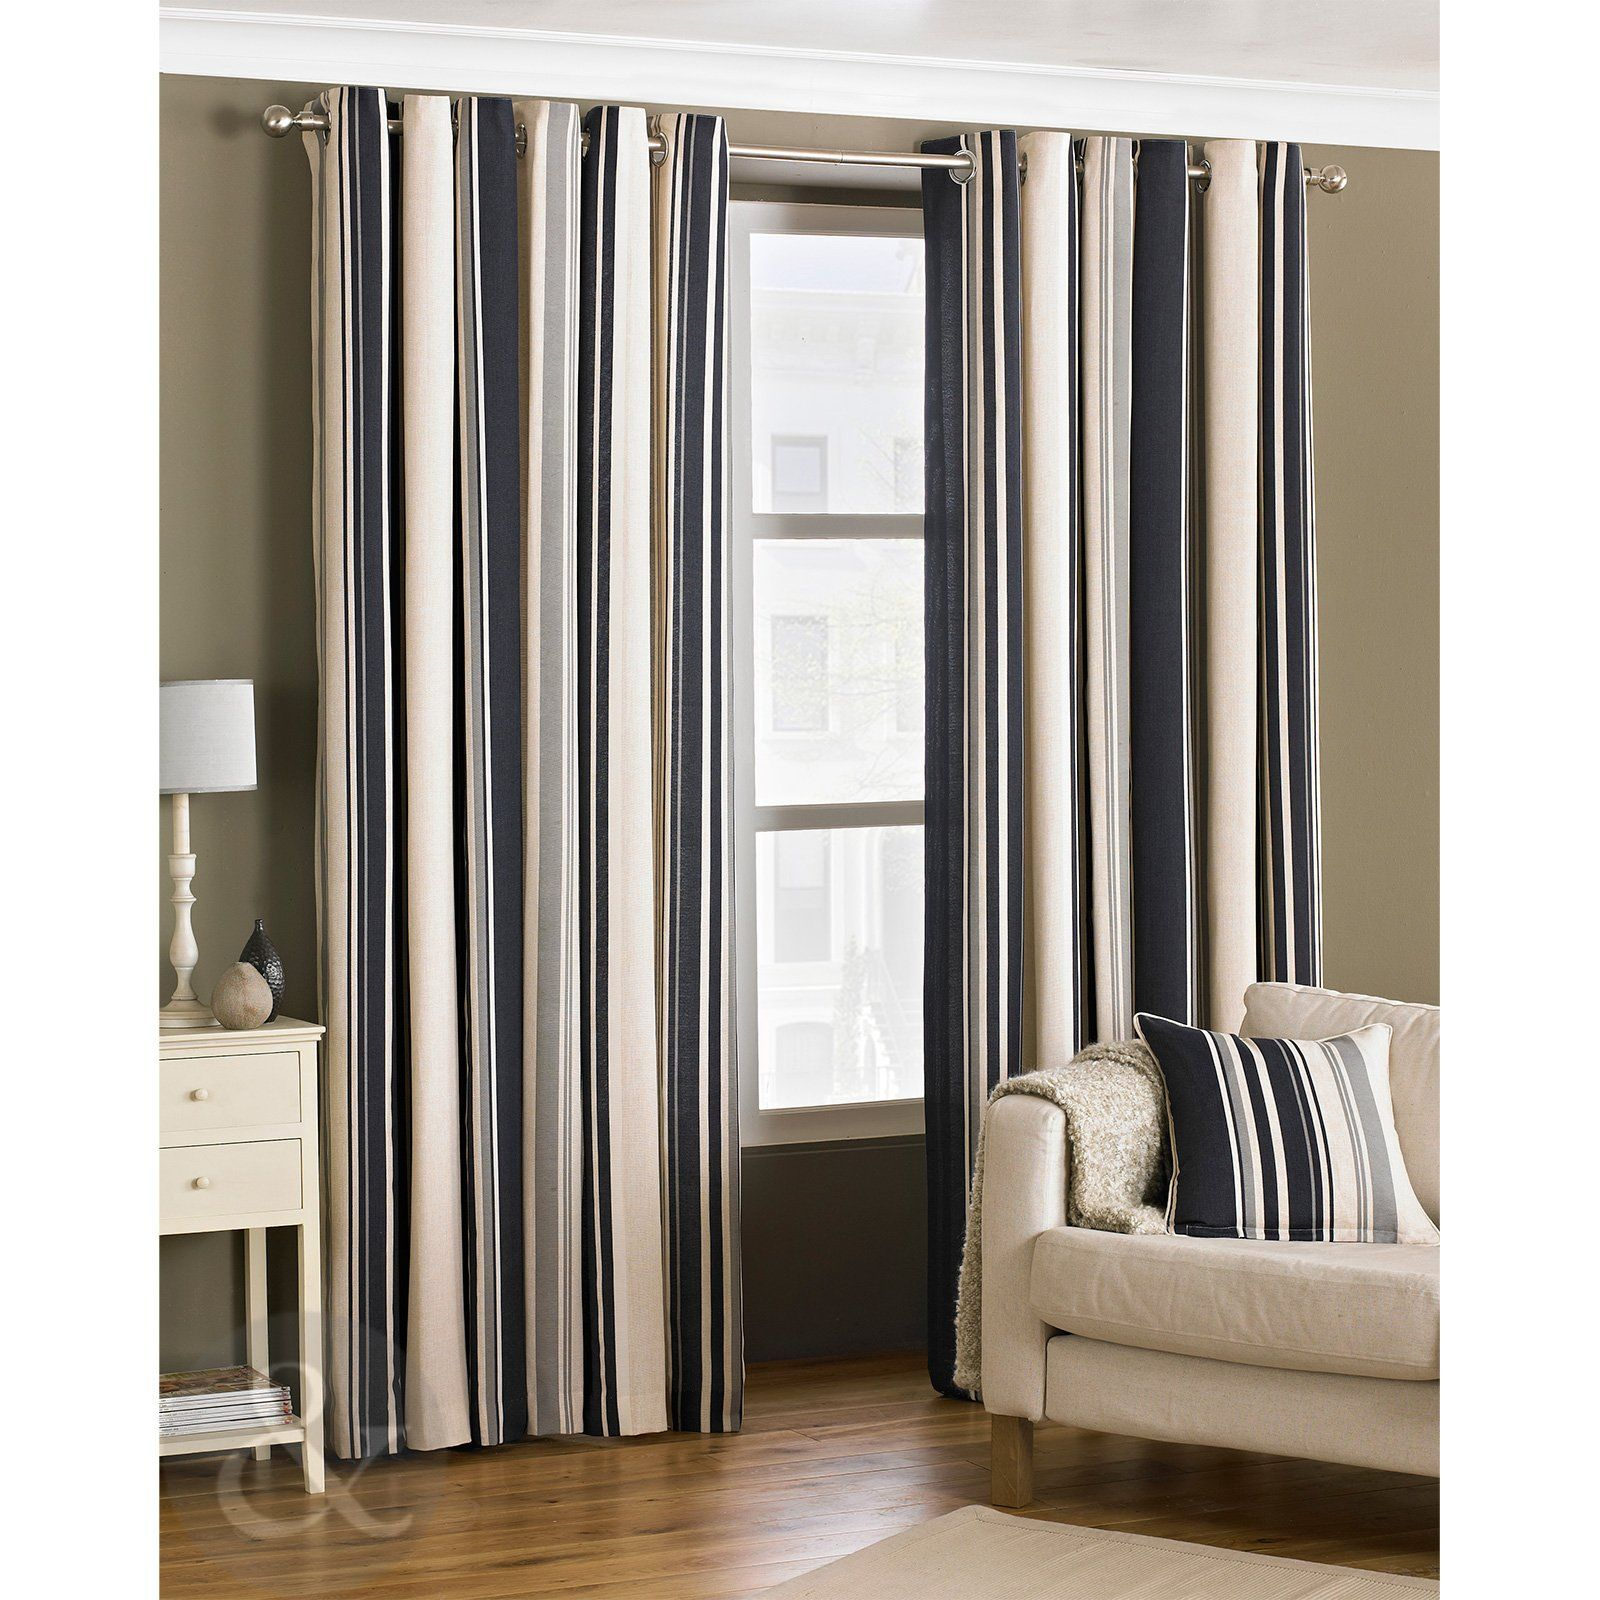 Kitchen Curtains Amazon Co Uk: Fully Lined Cream Grey & Black Curtain Pair Black ( Grey